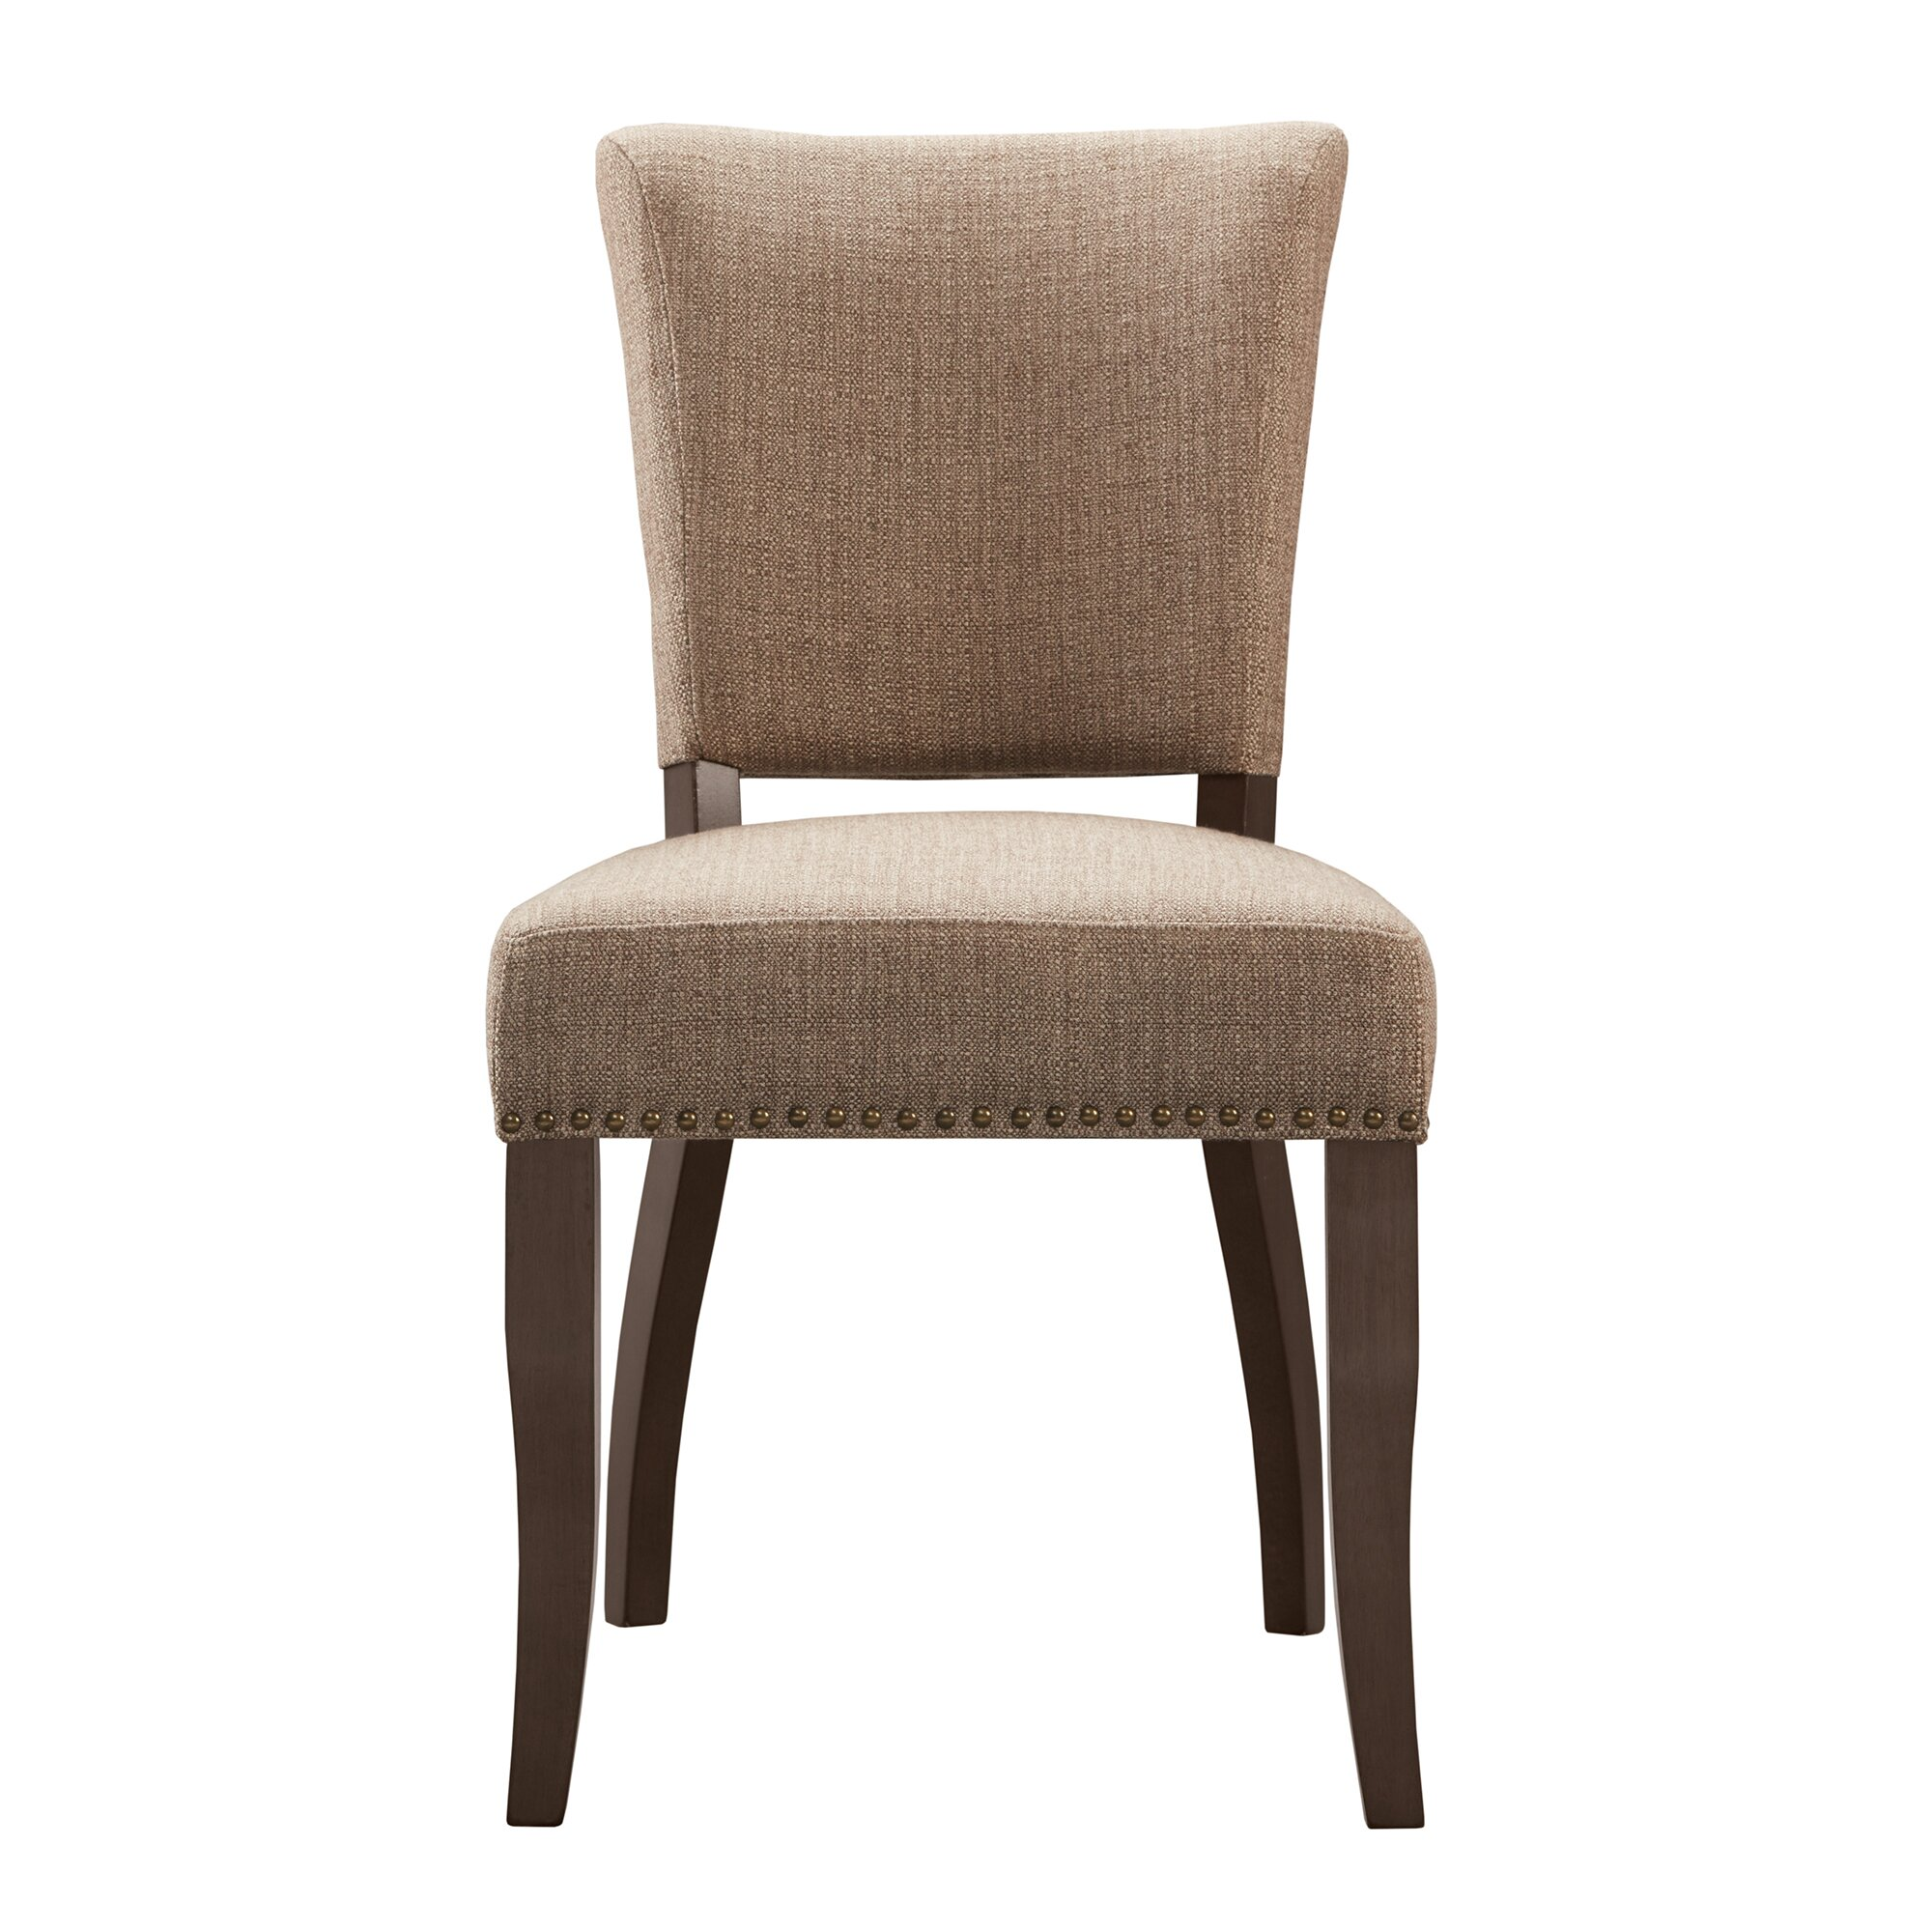 Darby Home Co Alasan Side Chair Reviews Wayfair